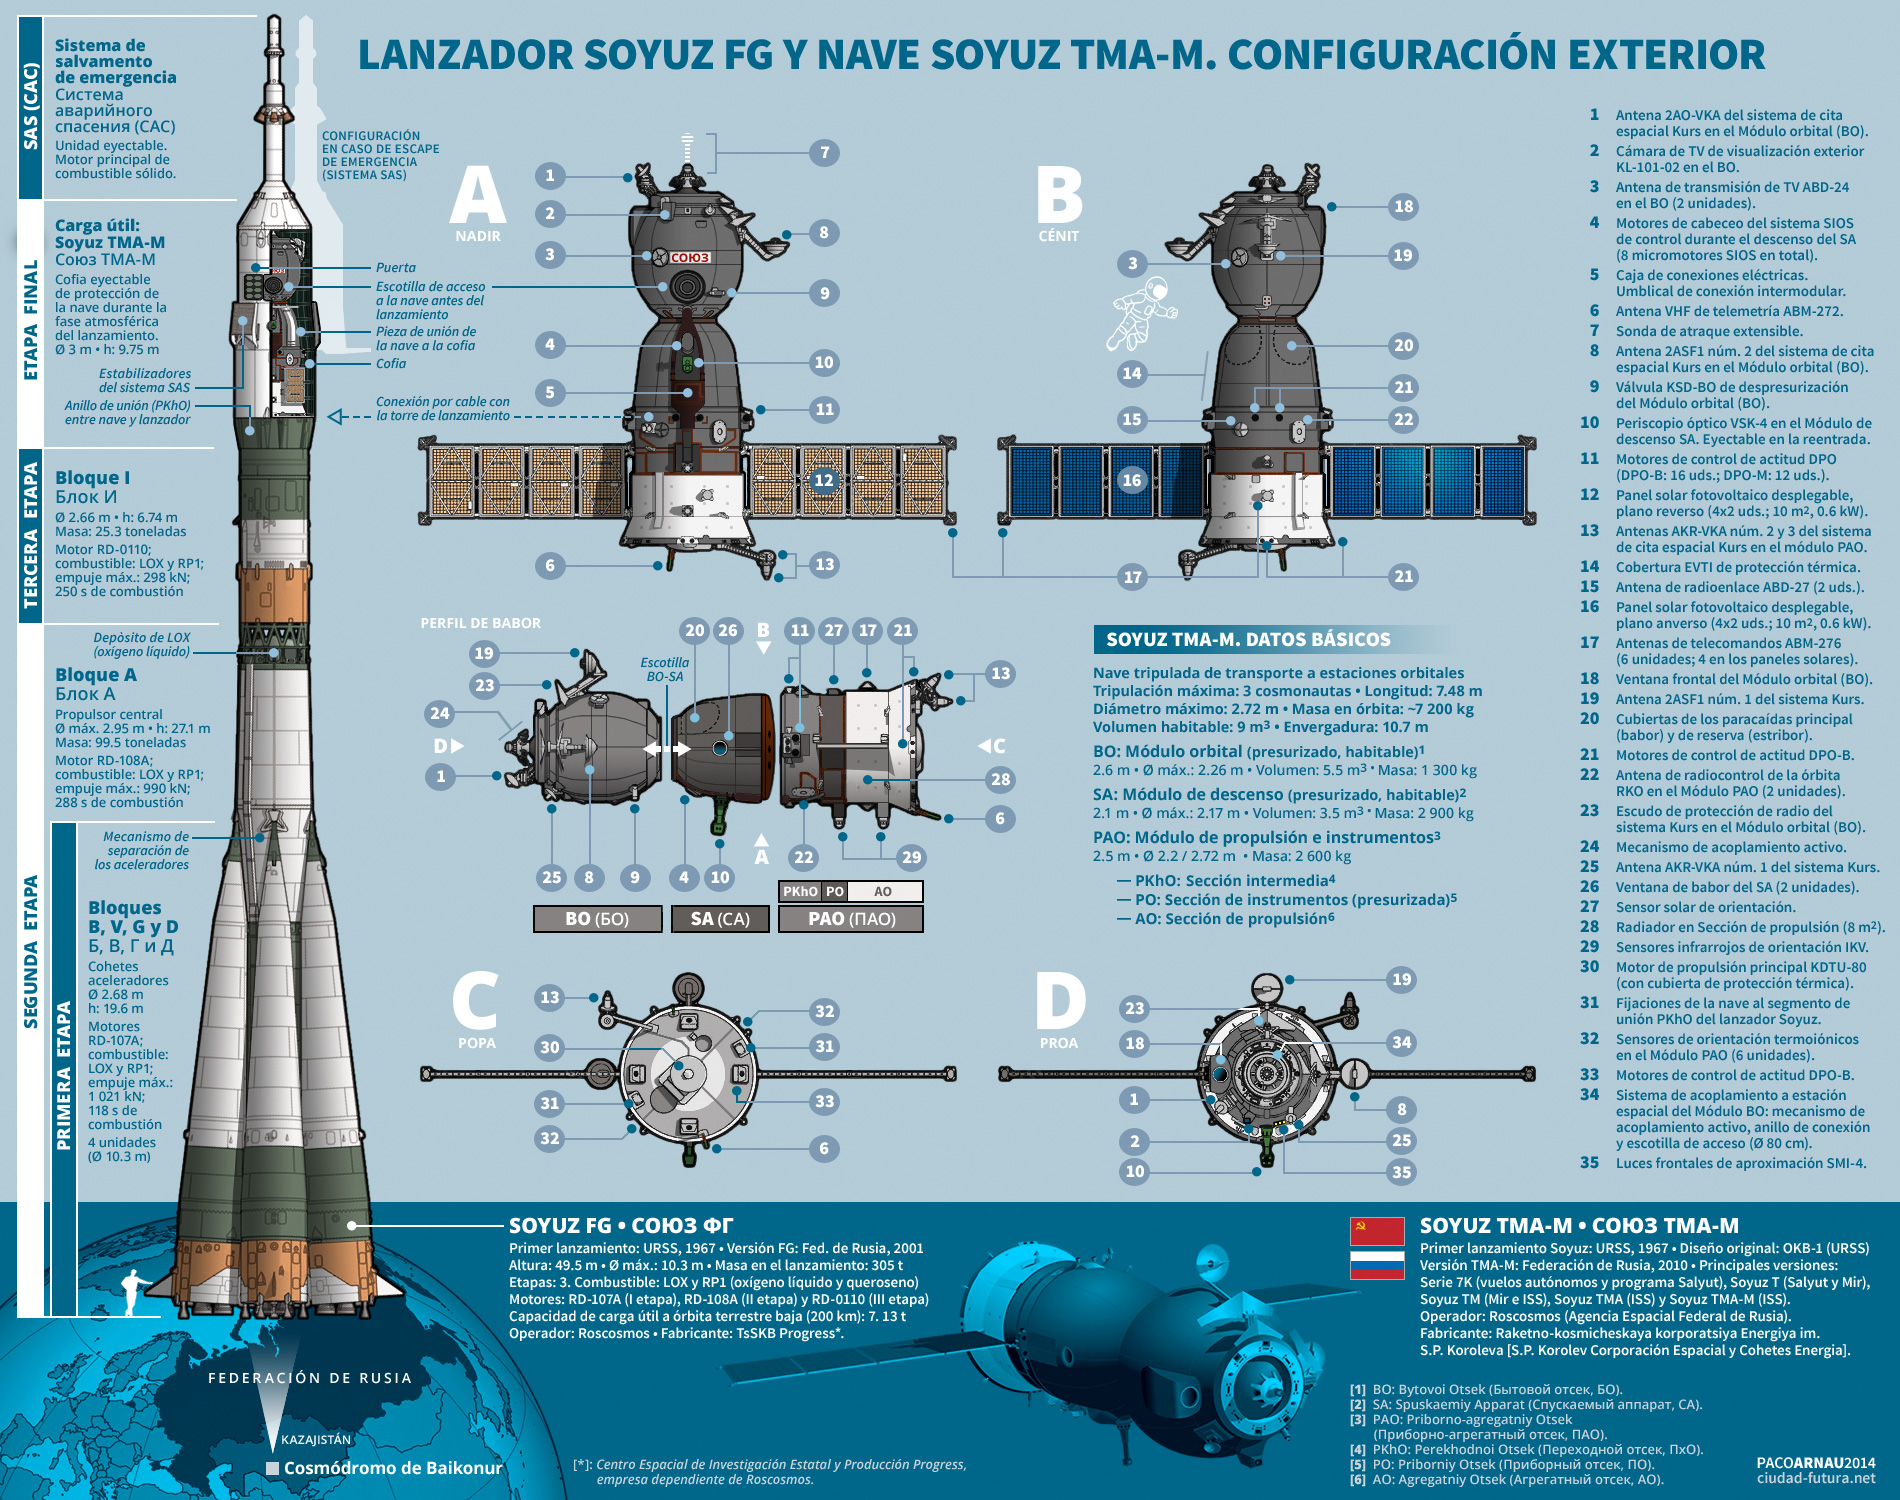 https://pacoarnau.files.wordpress.com/2014/10/vistas-soyuz-21.jpg